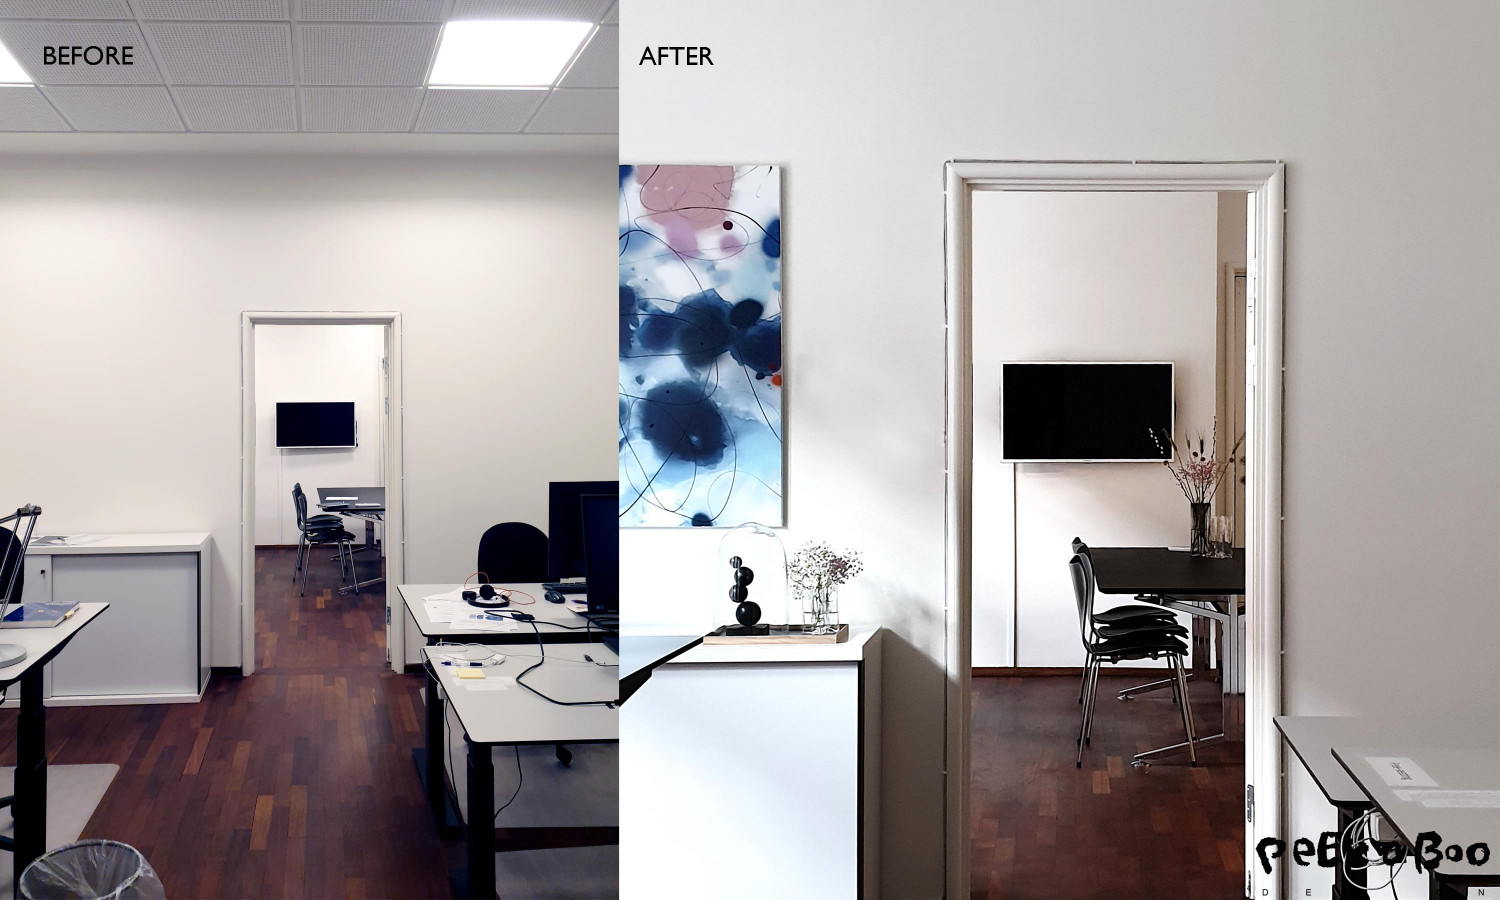 Here you can see one of the offices before and after. It has been added art and some styling.